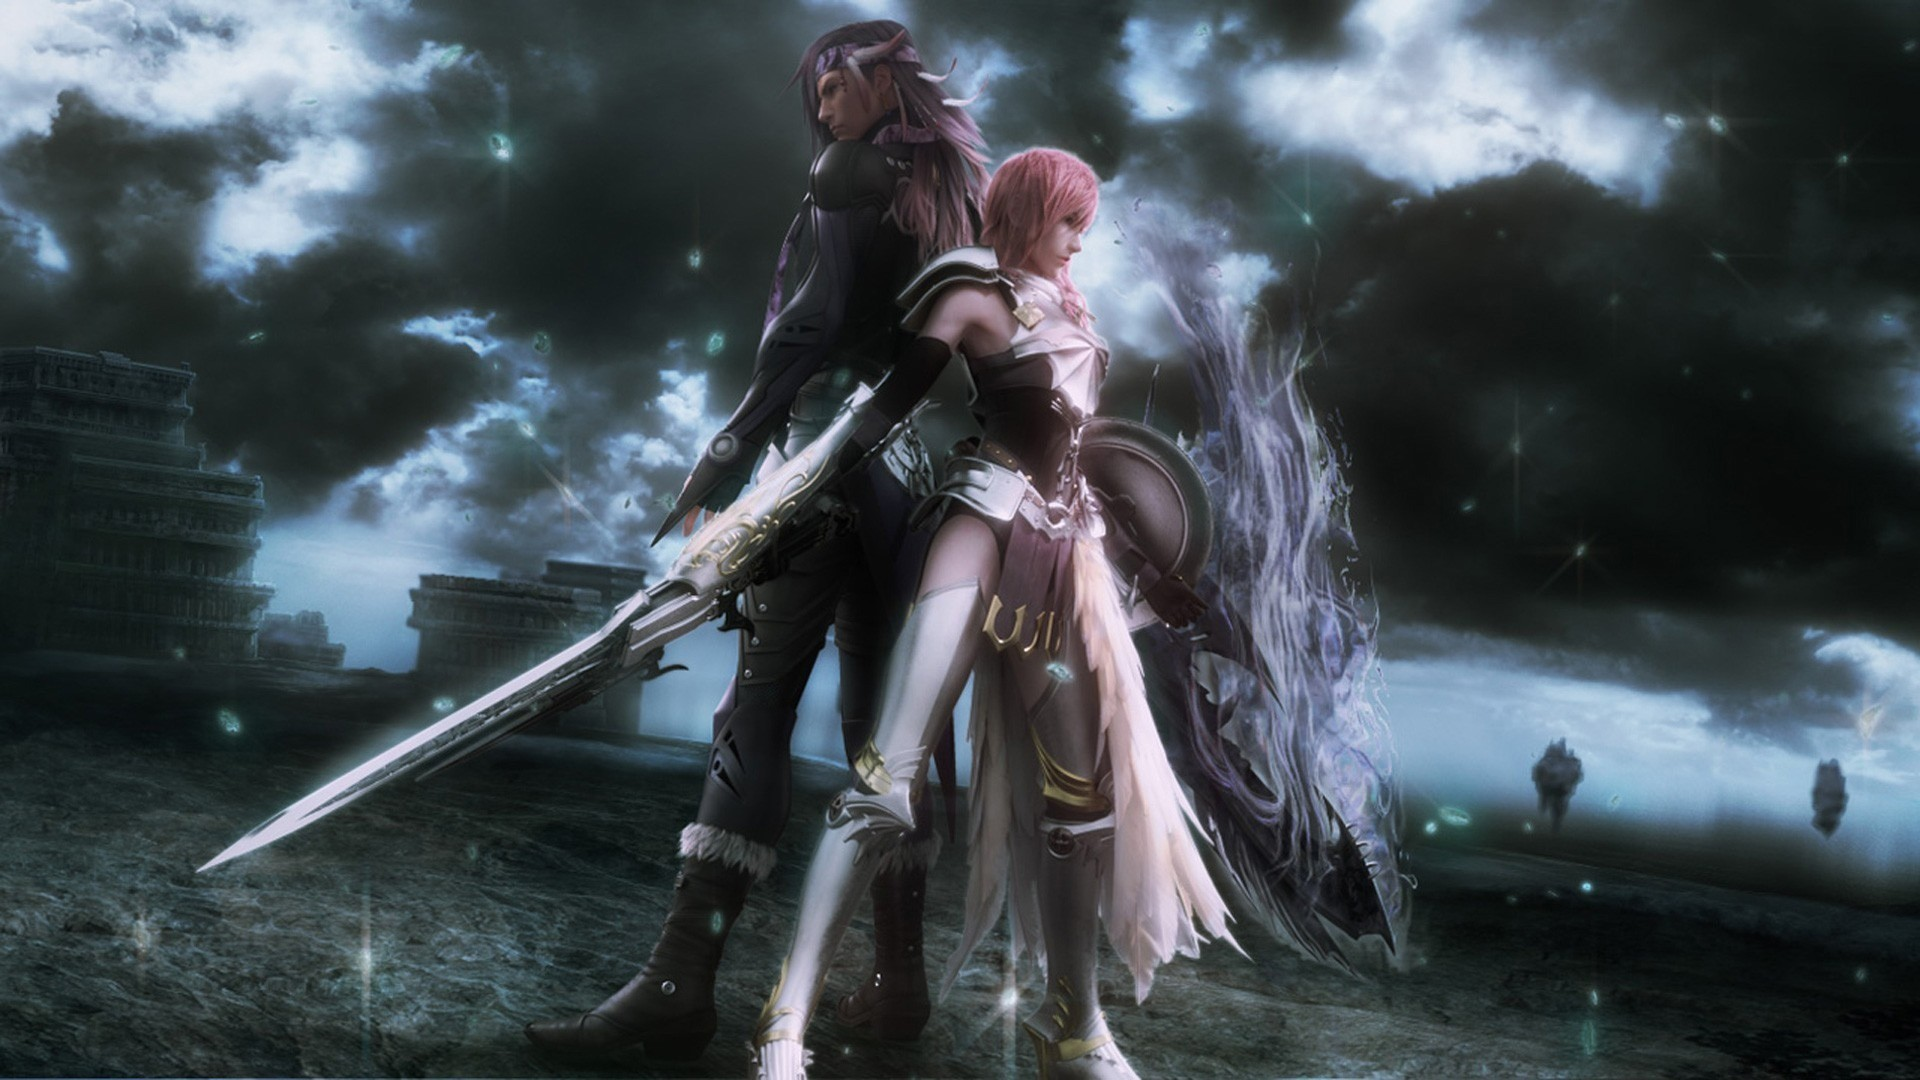 Hd Final Fantasy Wallpapers 63 Images